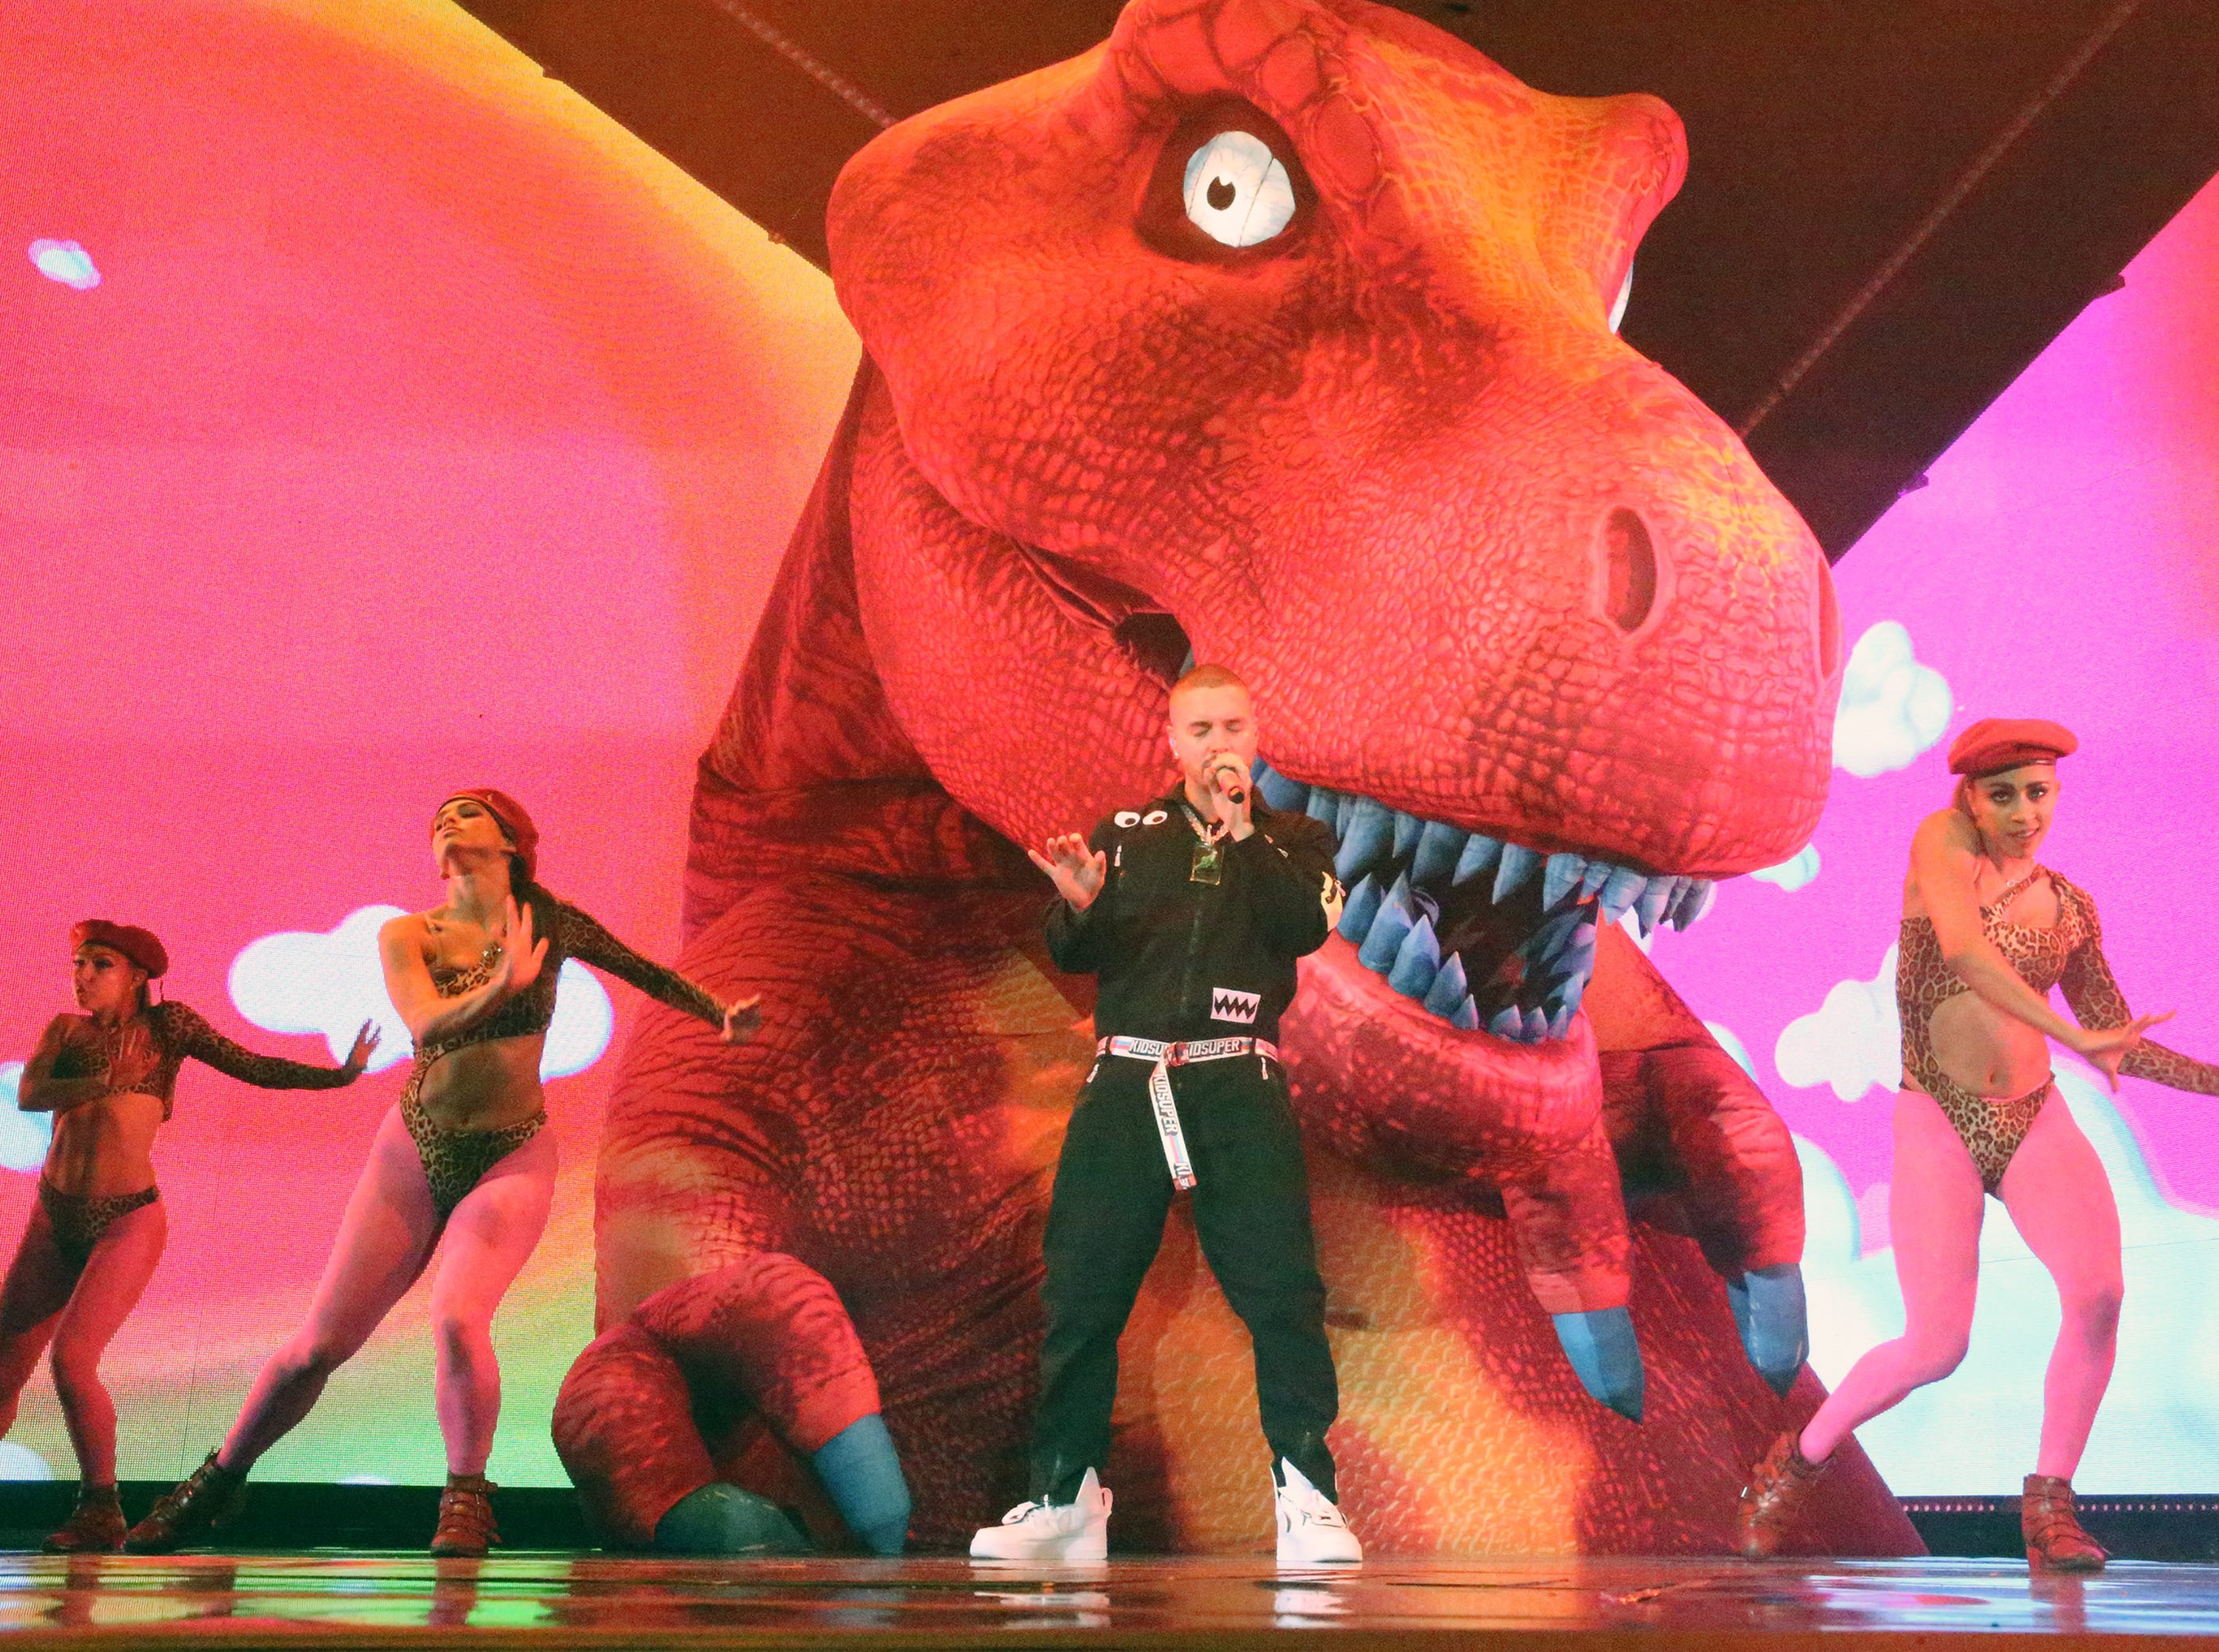 Singer J Balvin is joined on stage by dancers and a giant dinosaur looming above him Sunday night in the Don Haskins Center.